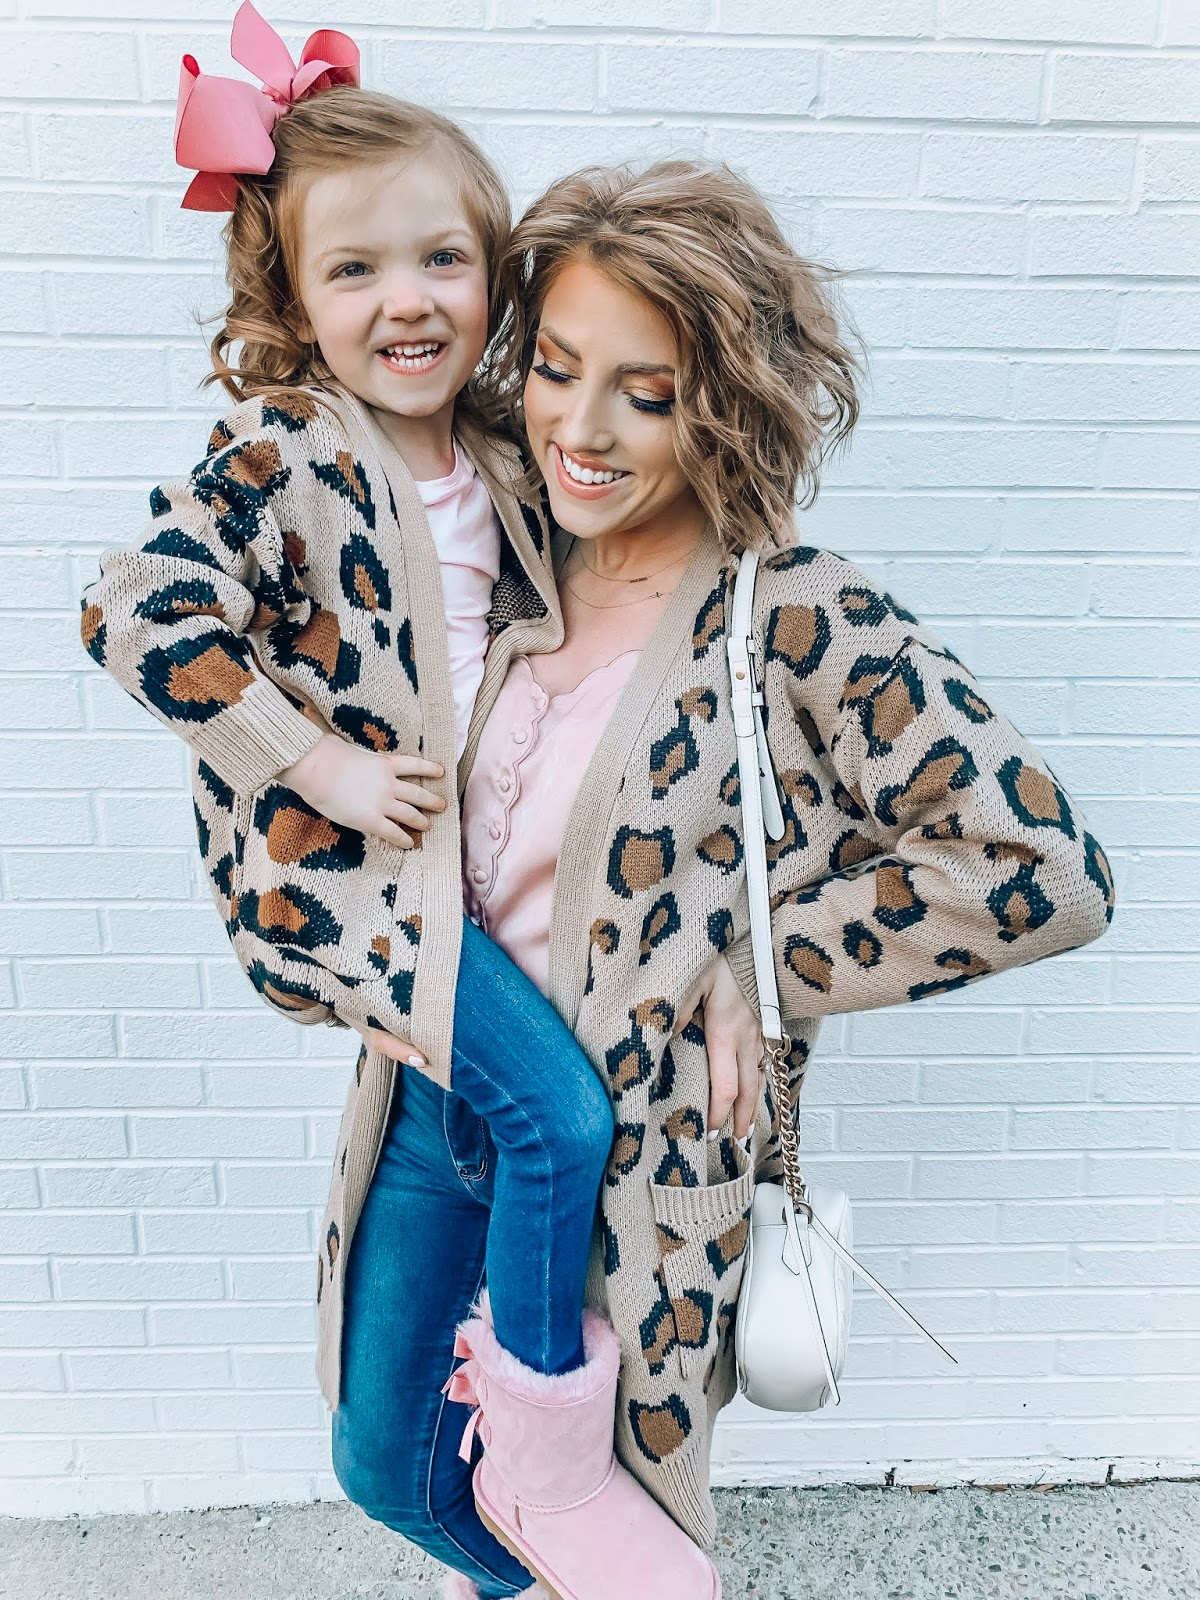 Recent Amazon Finds - Leopard Print Cardigans - Something Delightful Blog #AmazonFashion #RecentFinds #Hearts #ValentinesDay #AffordableFashion